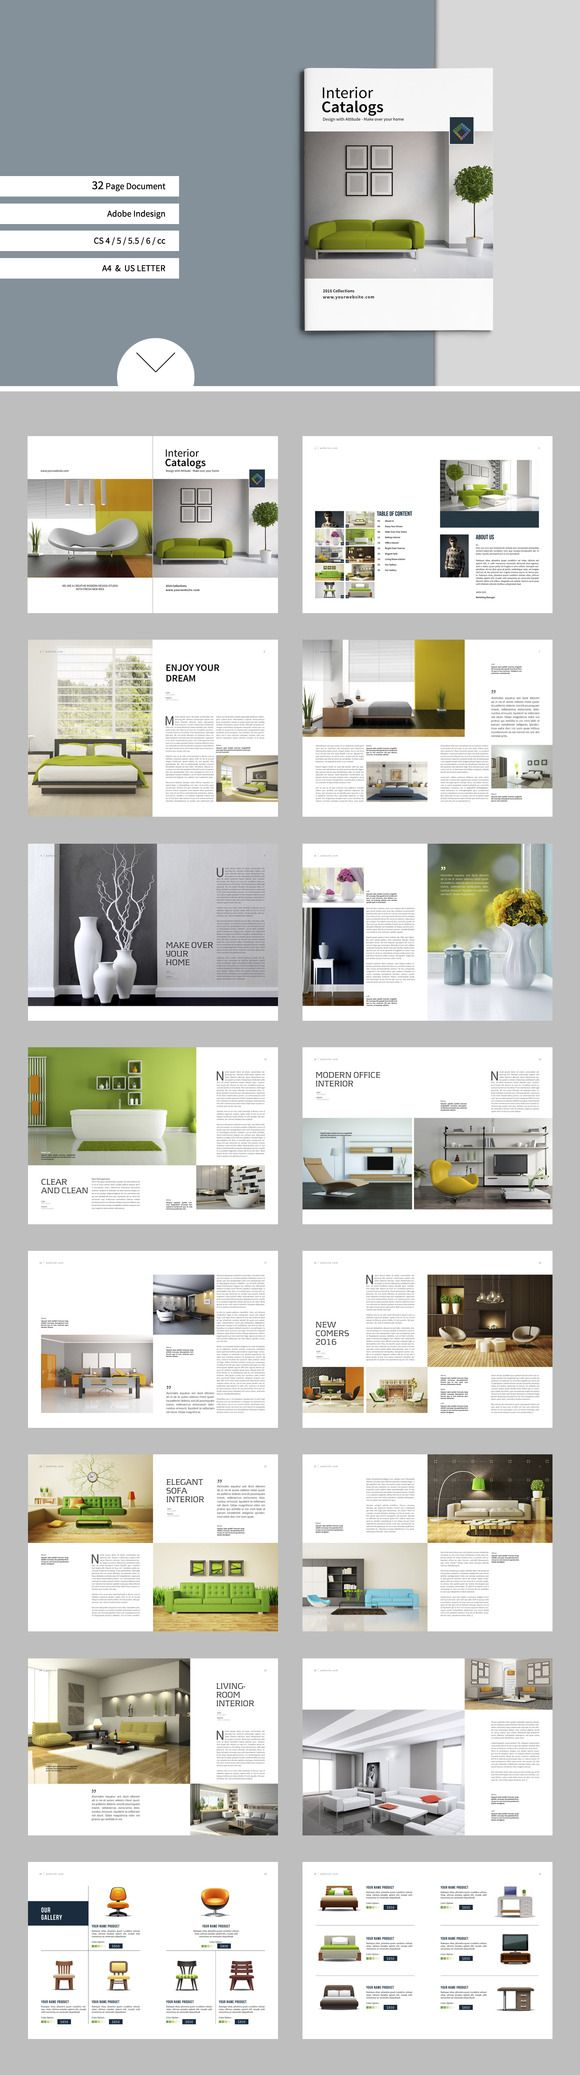 best 25+ catalog ideas on pinterest | portfolio design, design